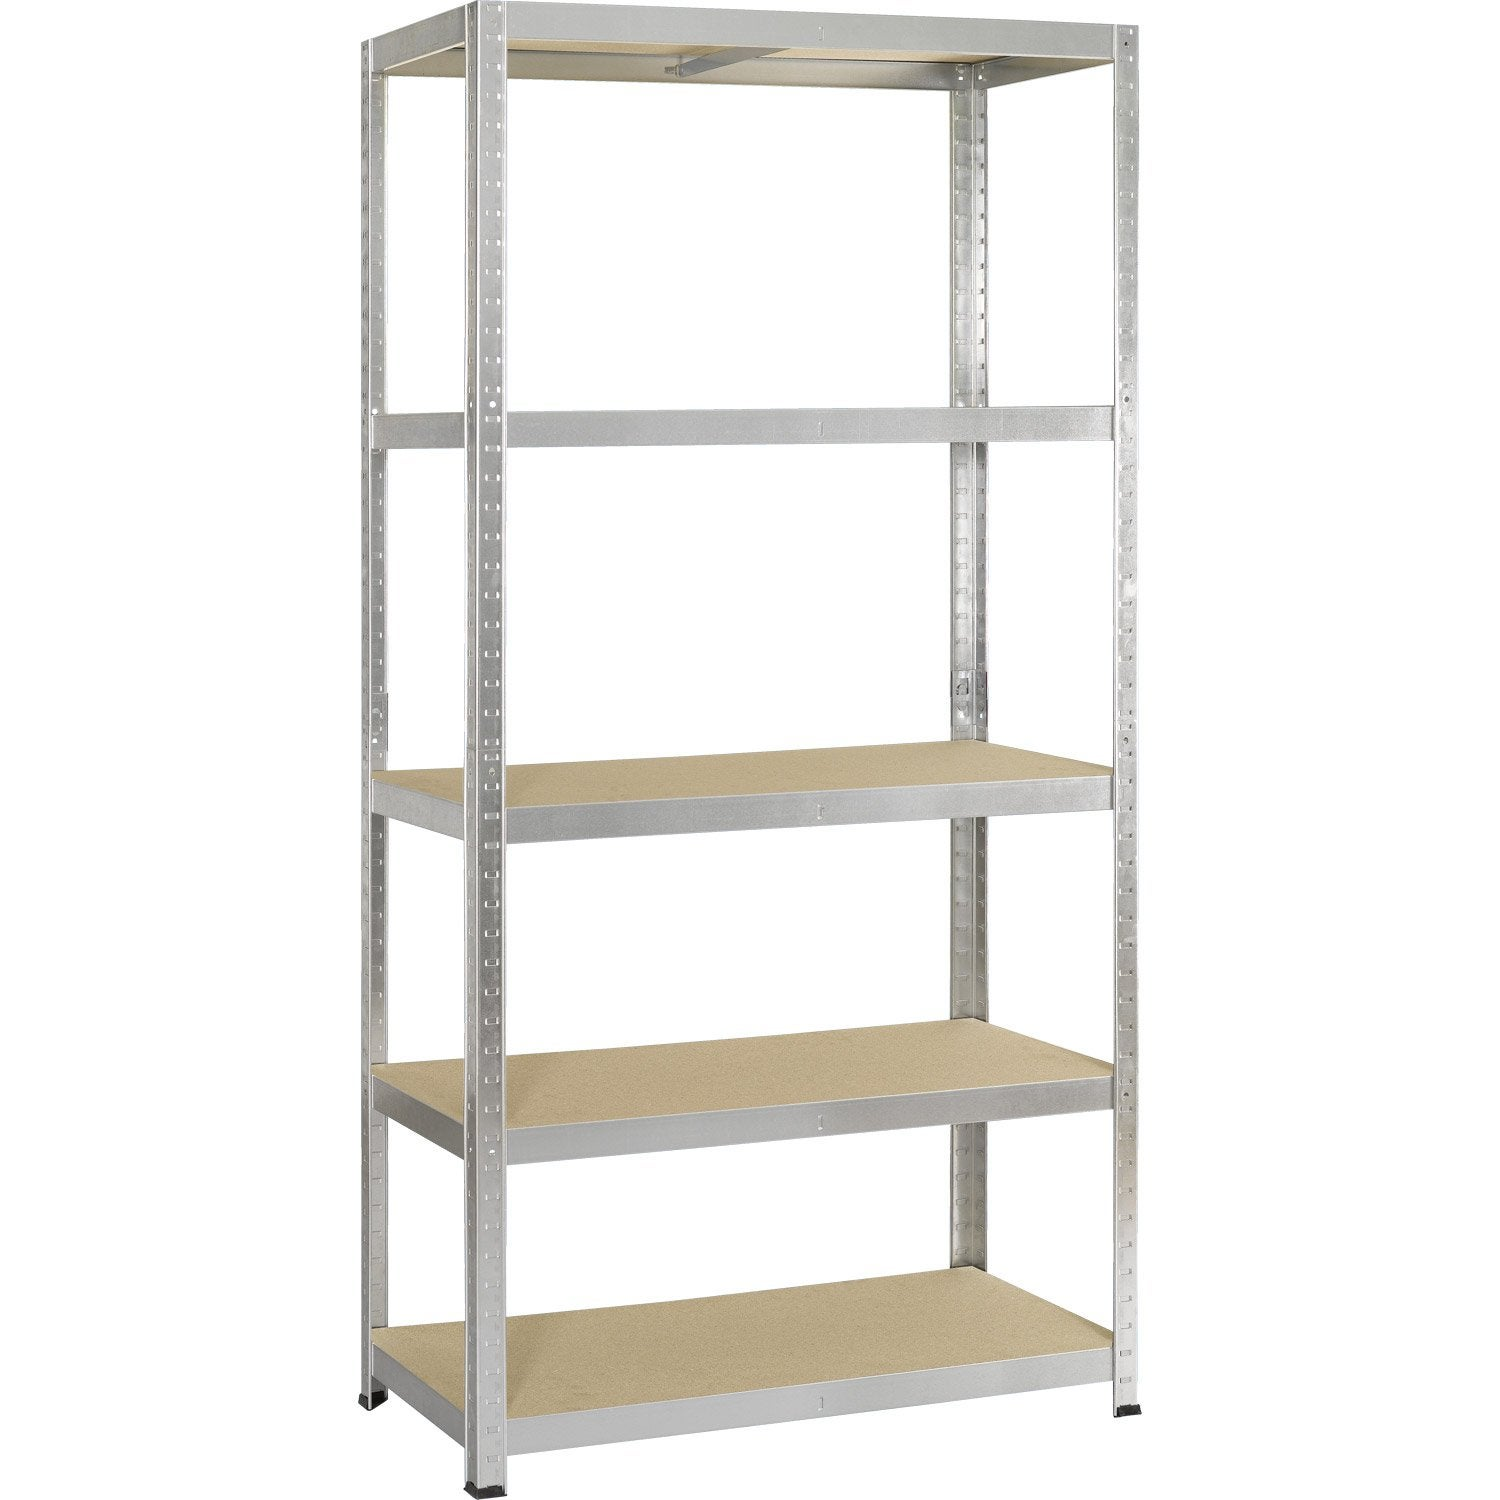 Etagere metal avasco racky - Leroy merlin casier rangement ...